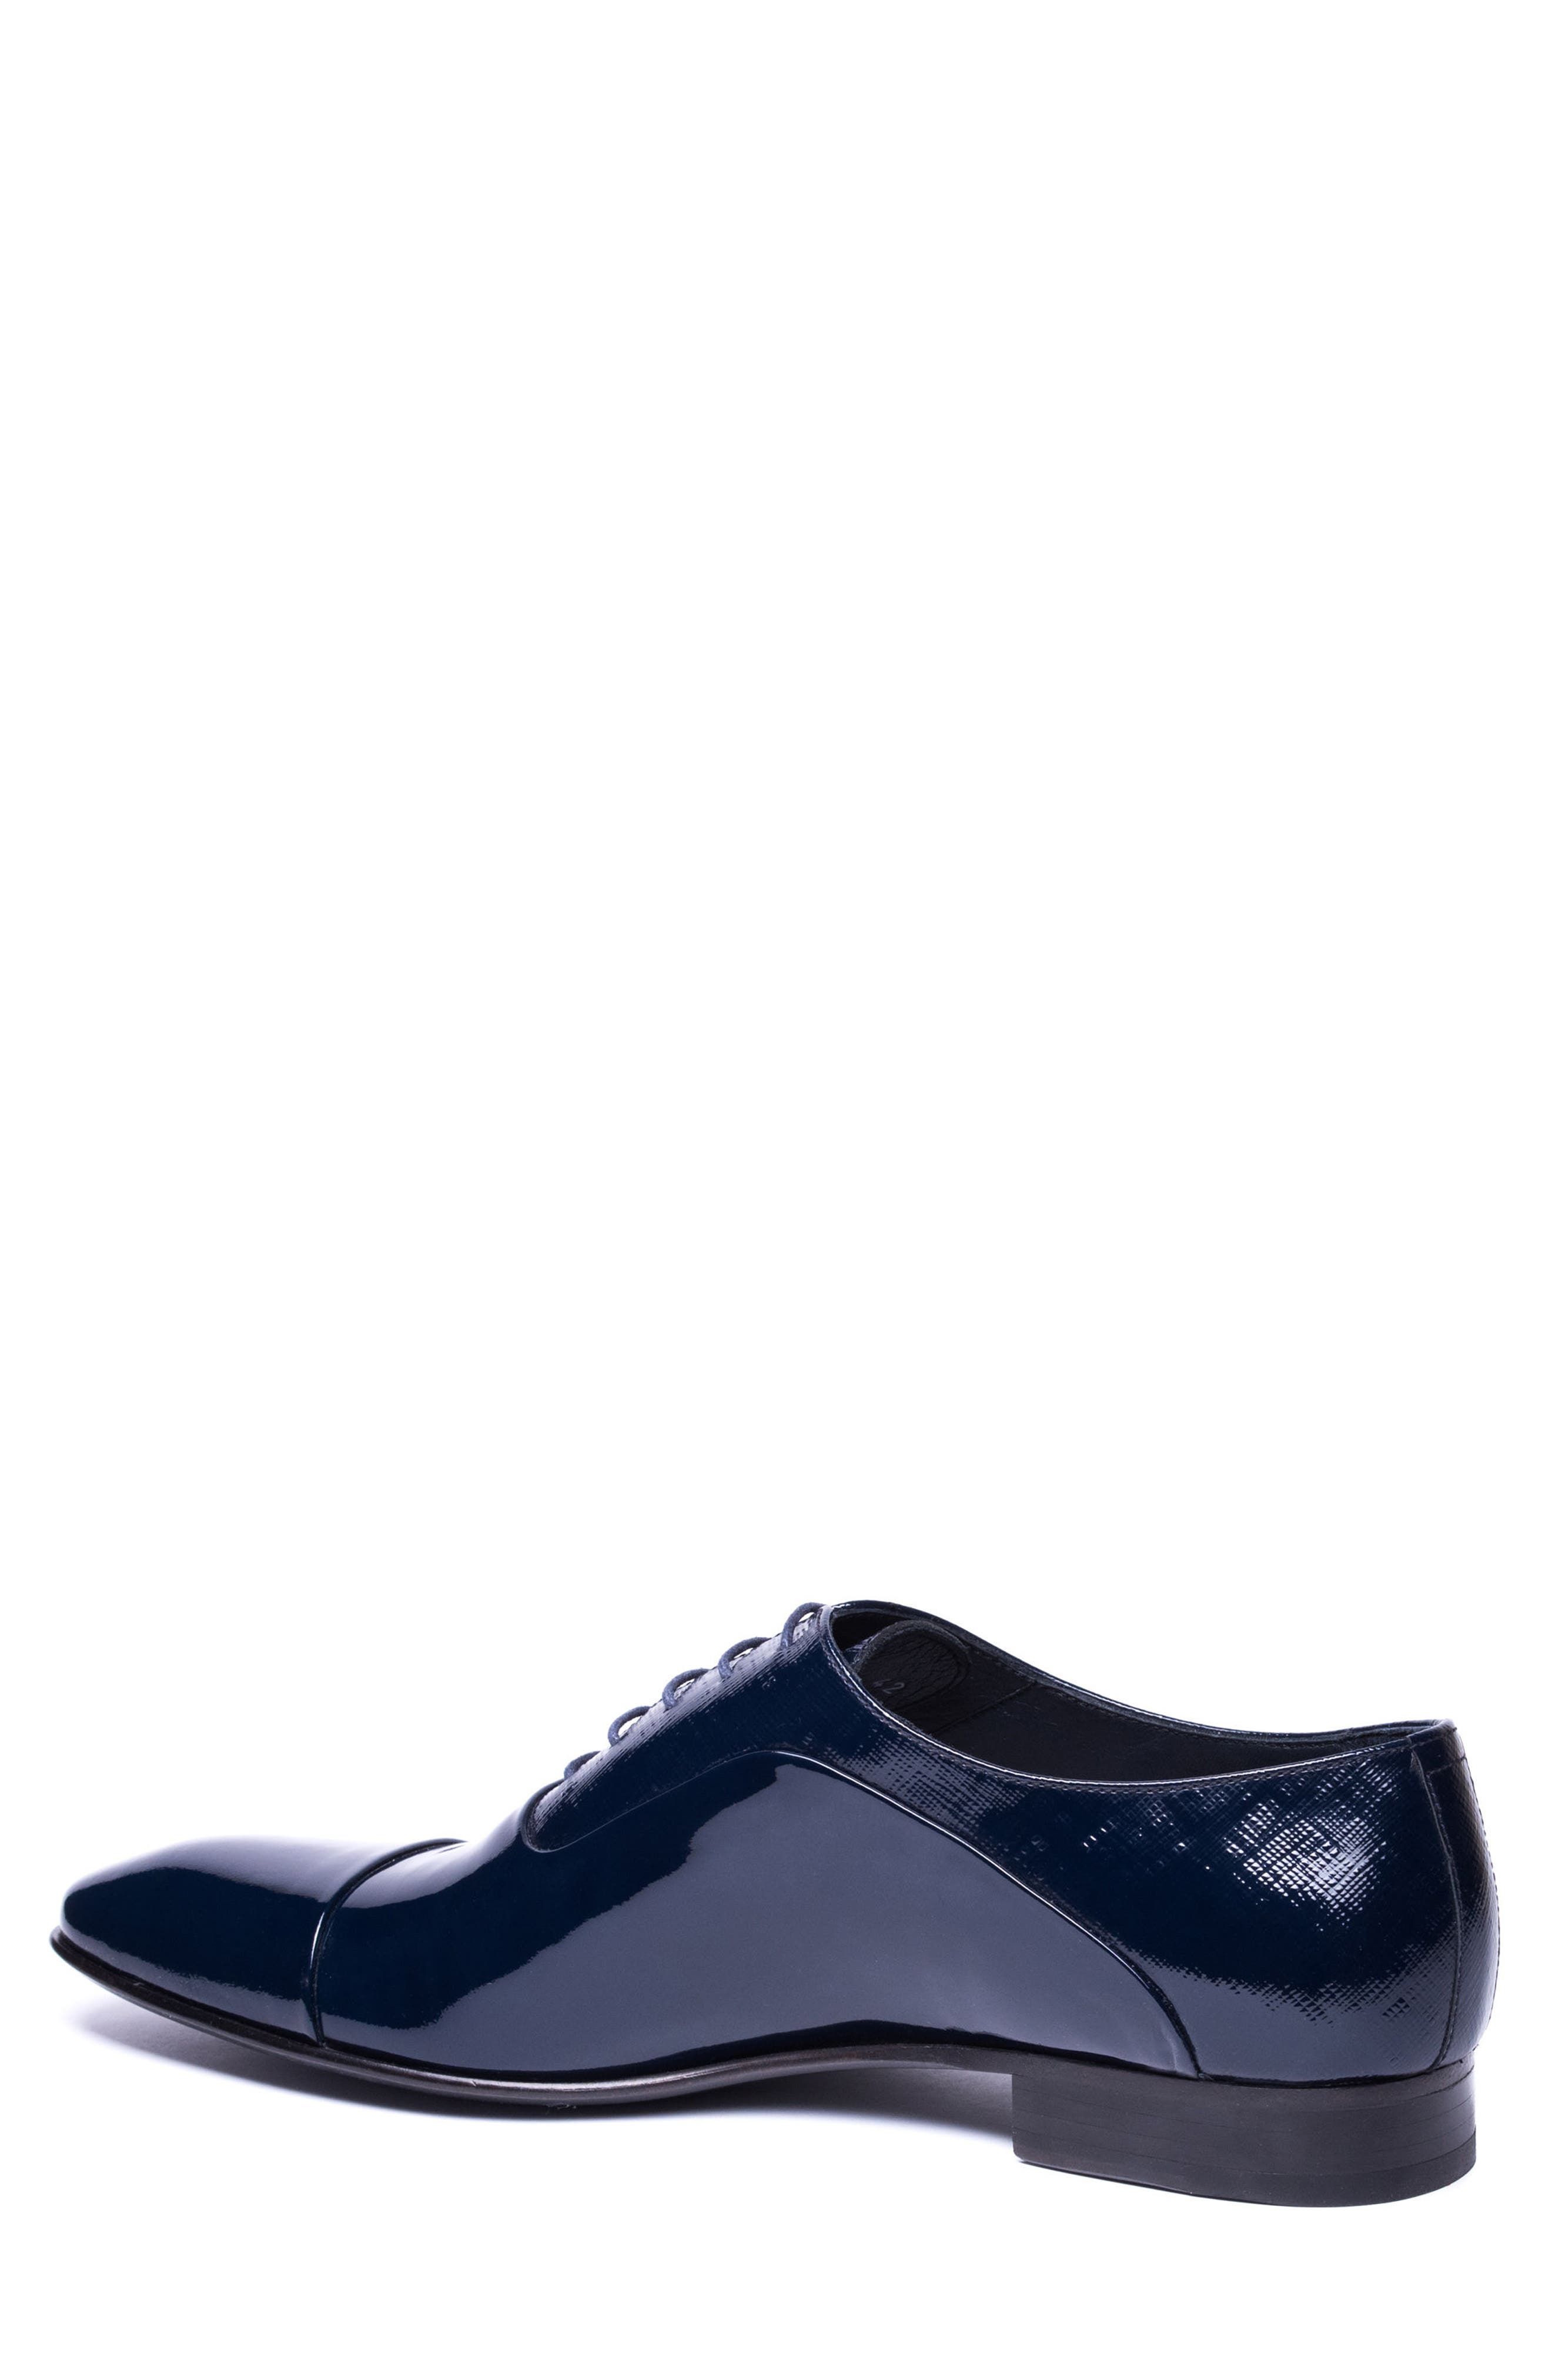 Jimmy Cap Toe Oxford,                             Alternate thumbnail 2, color,                             Navy Leather